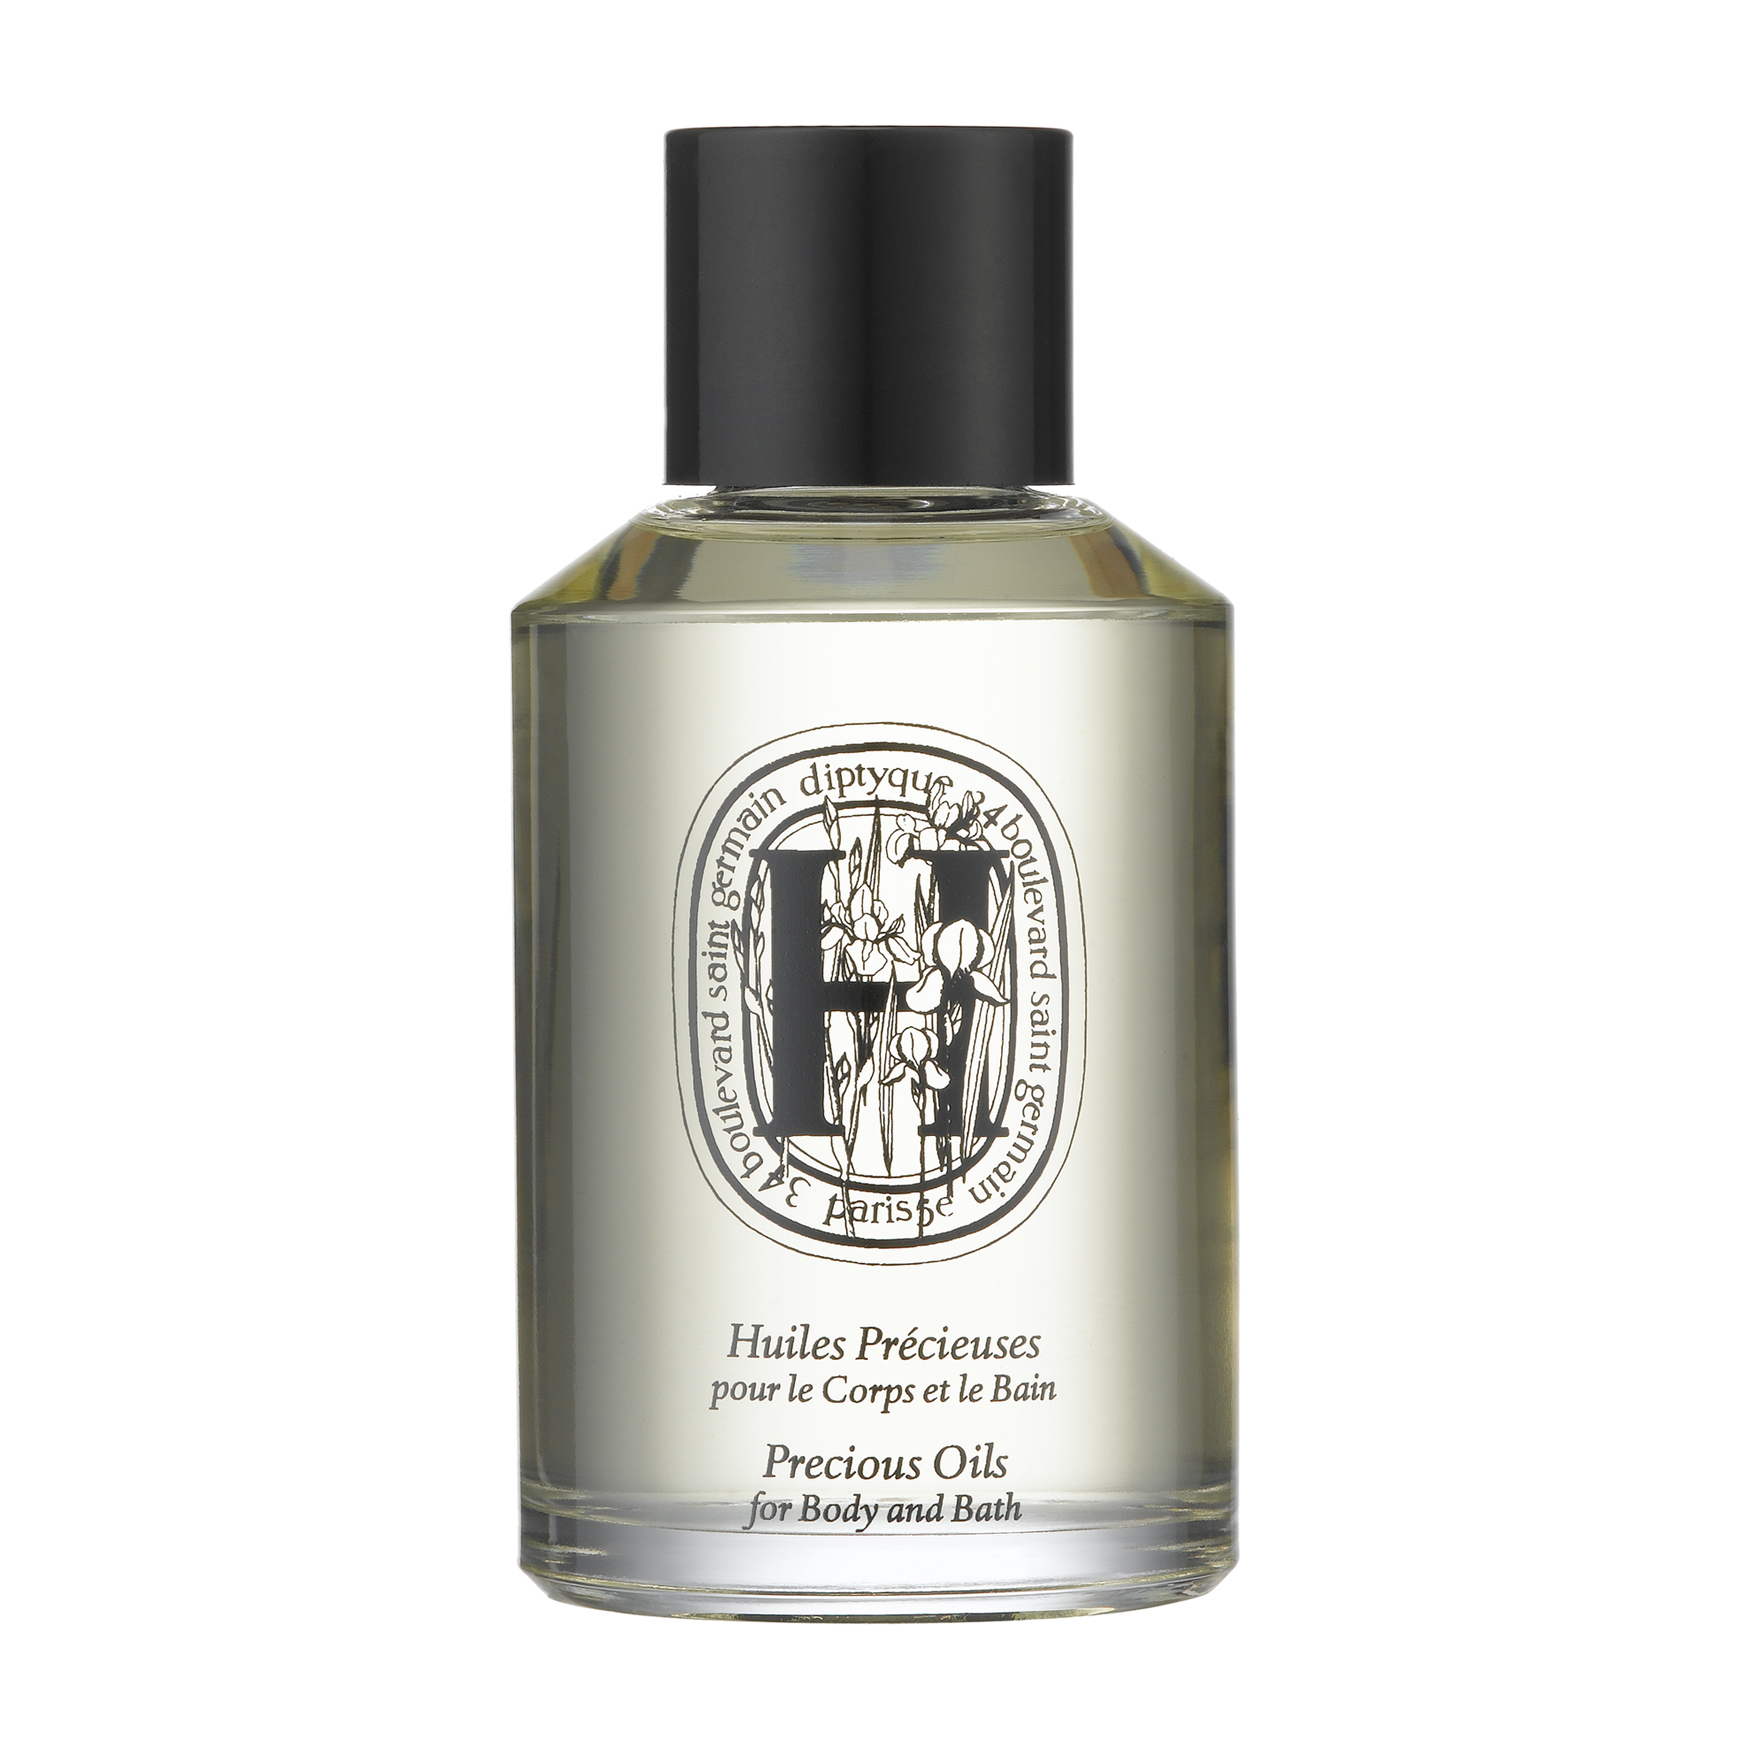 Precious Oils for Body and Bath 125ml, , large